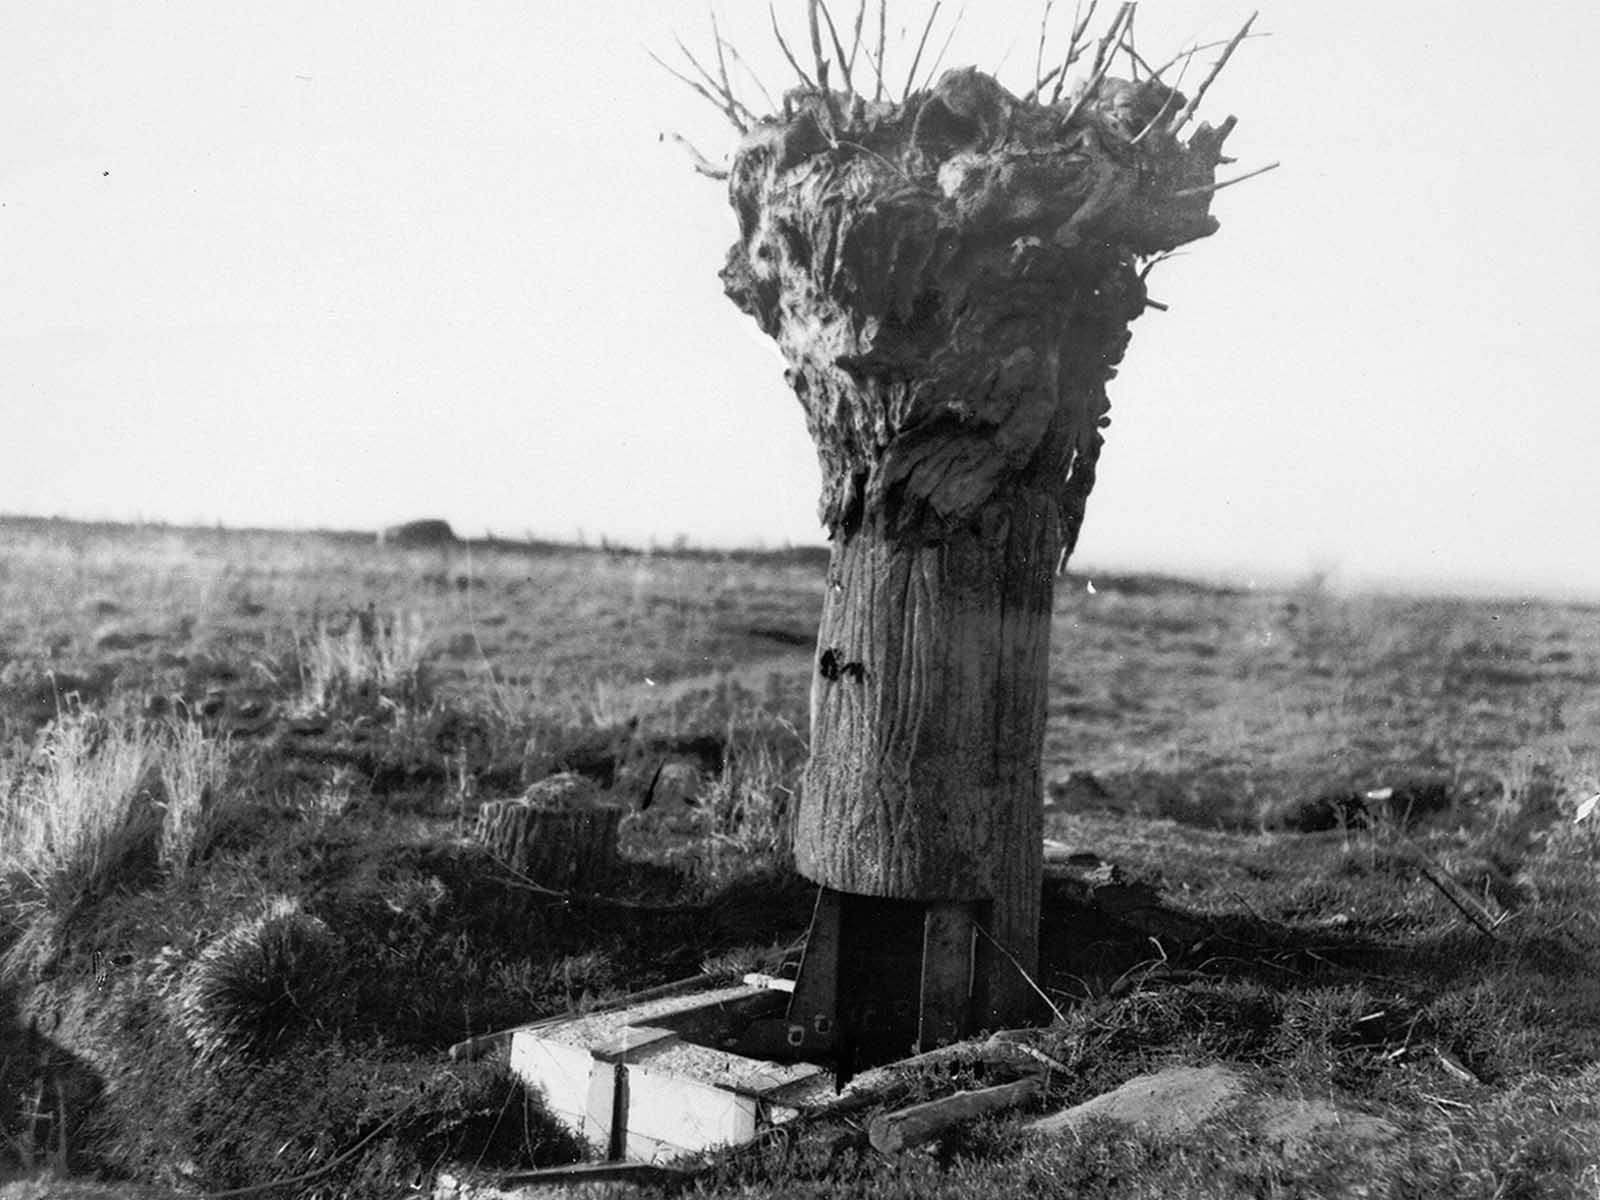 A British false tree, a type of disguised observation post used by both sides.